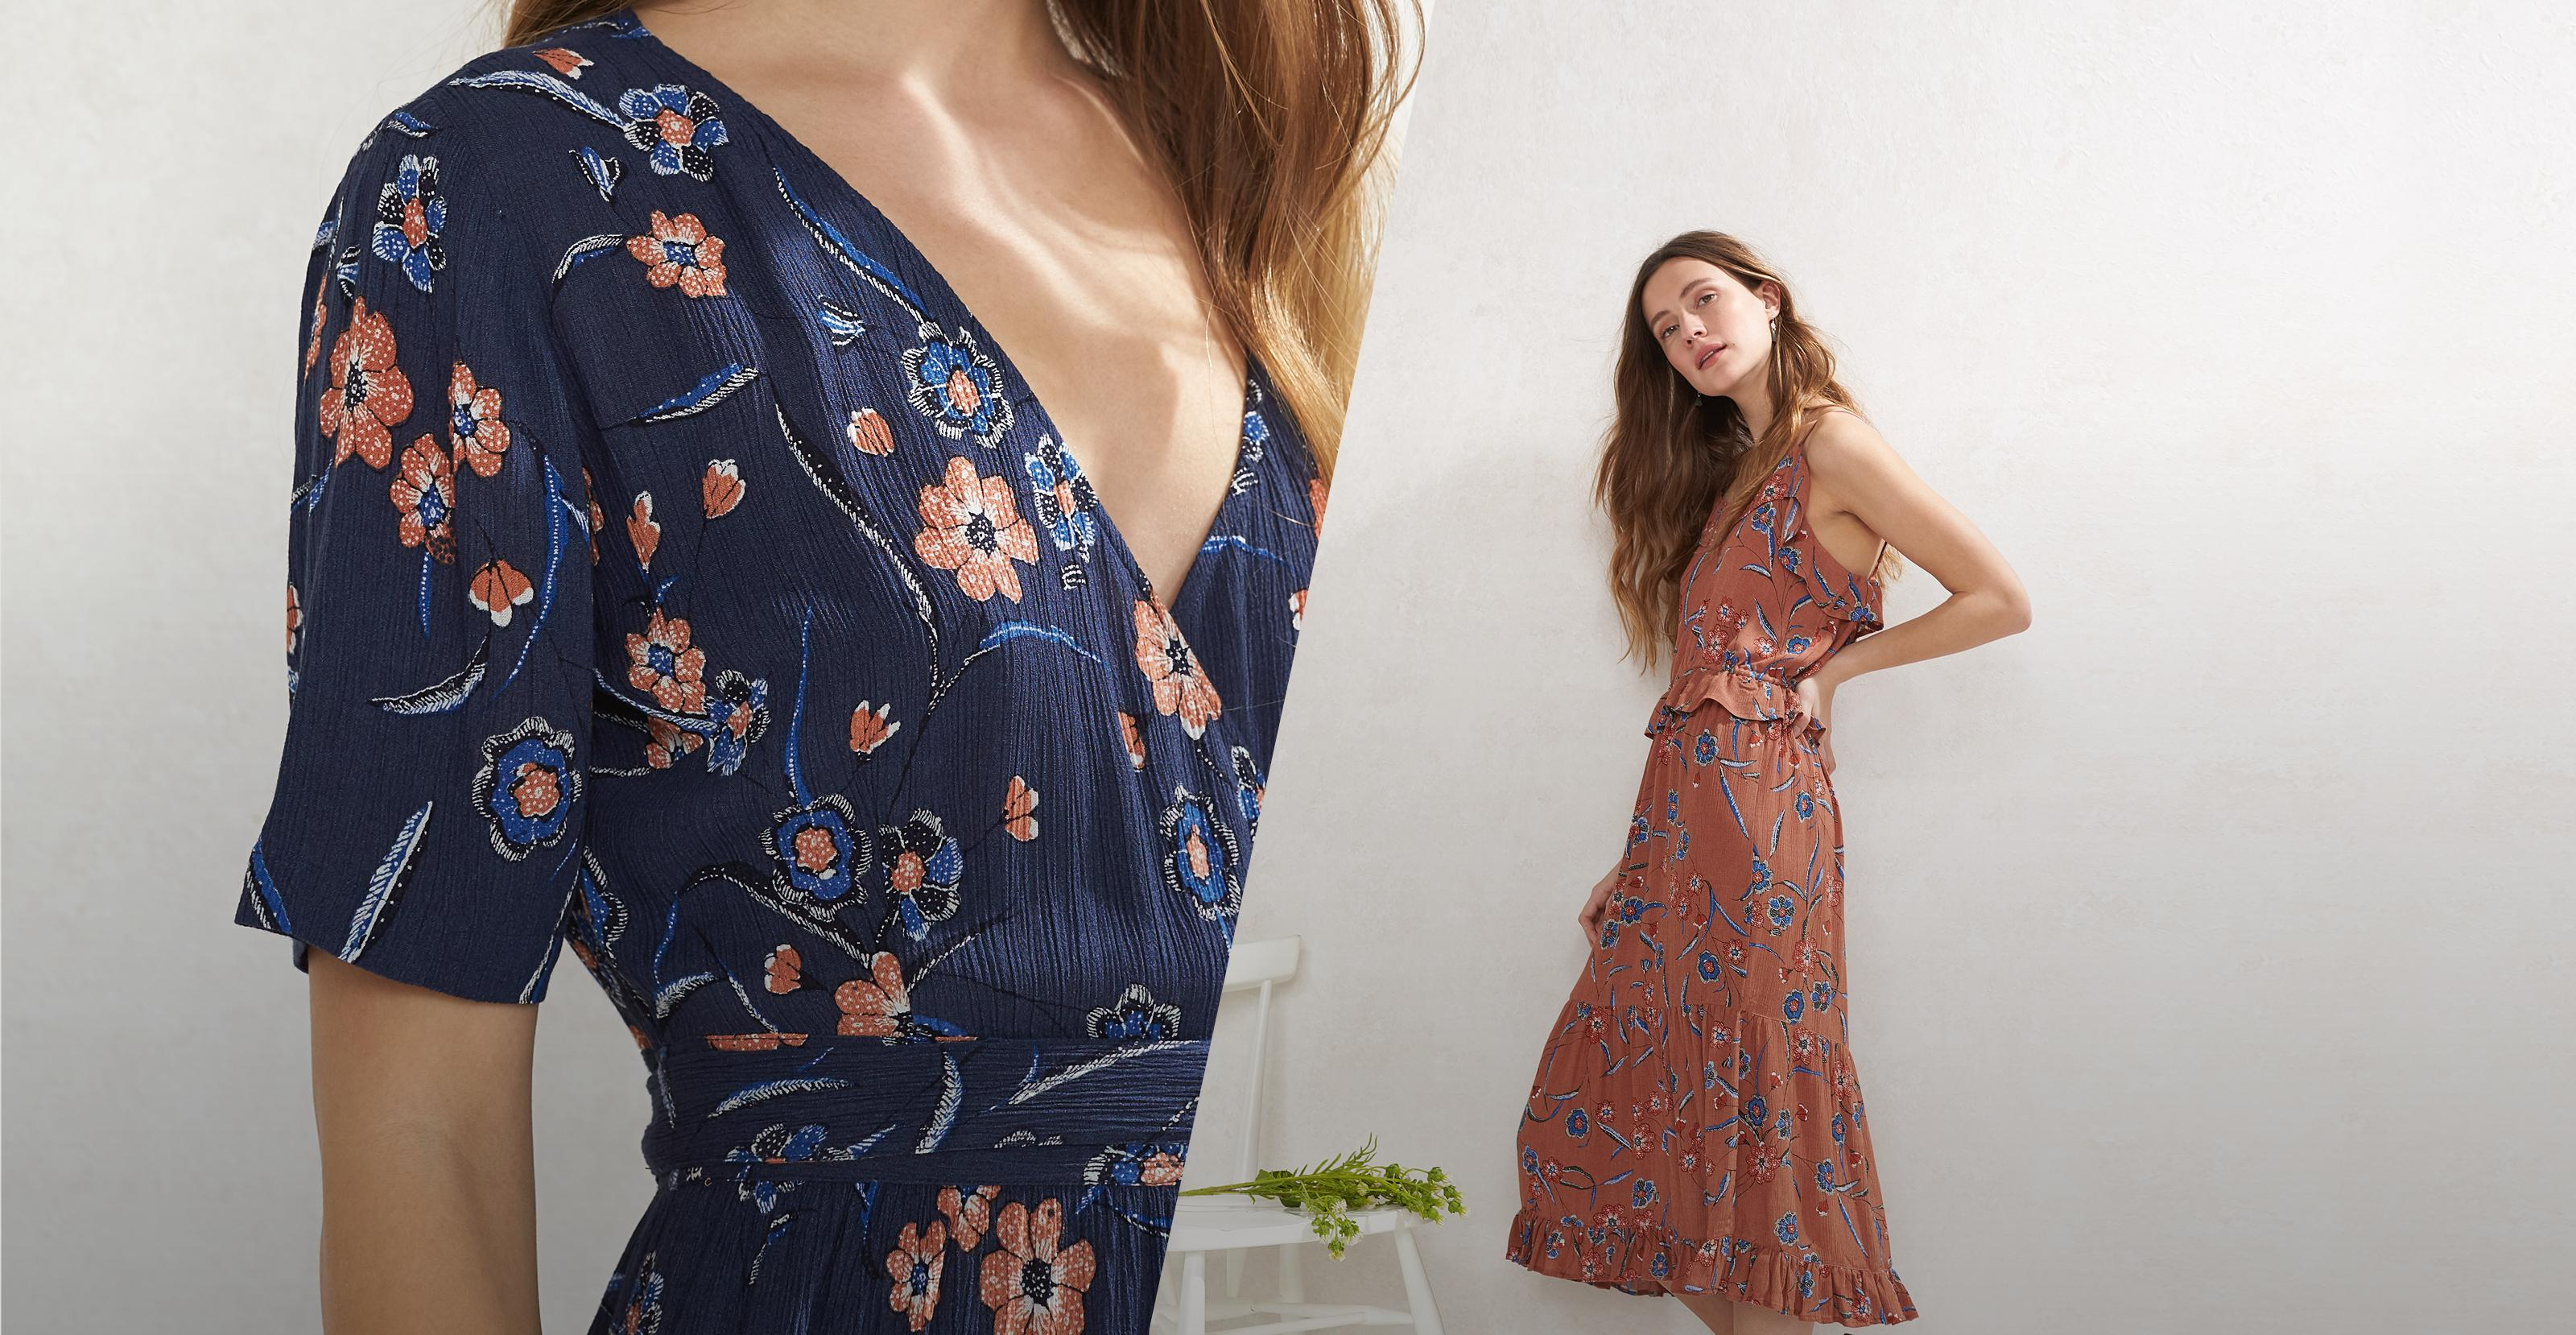 Split image of a woman FatFace model wearing a indigo Sunset Floral Willa Wrap Dress and a model wearing a terracotta Sunset Floral Dress.